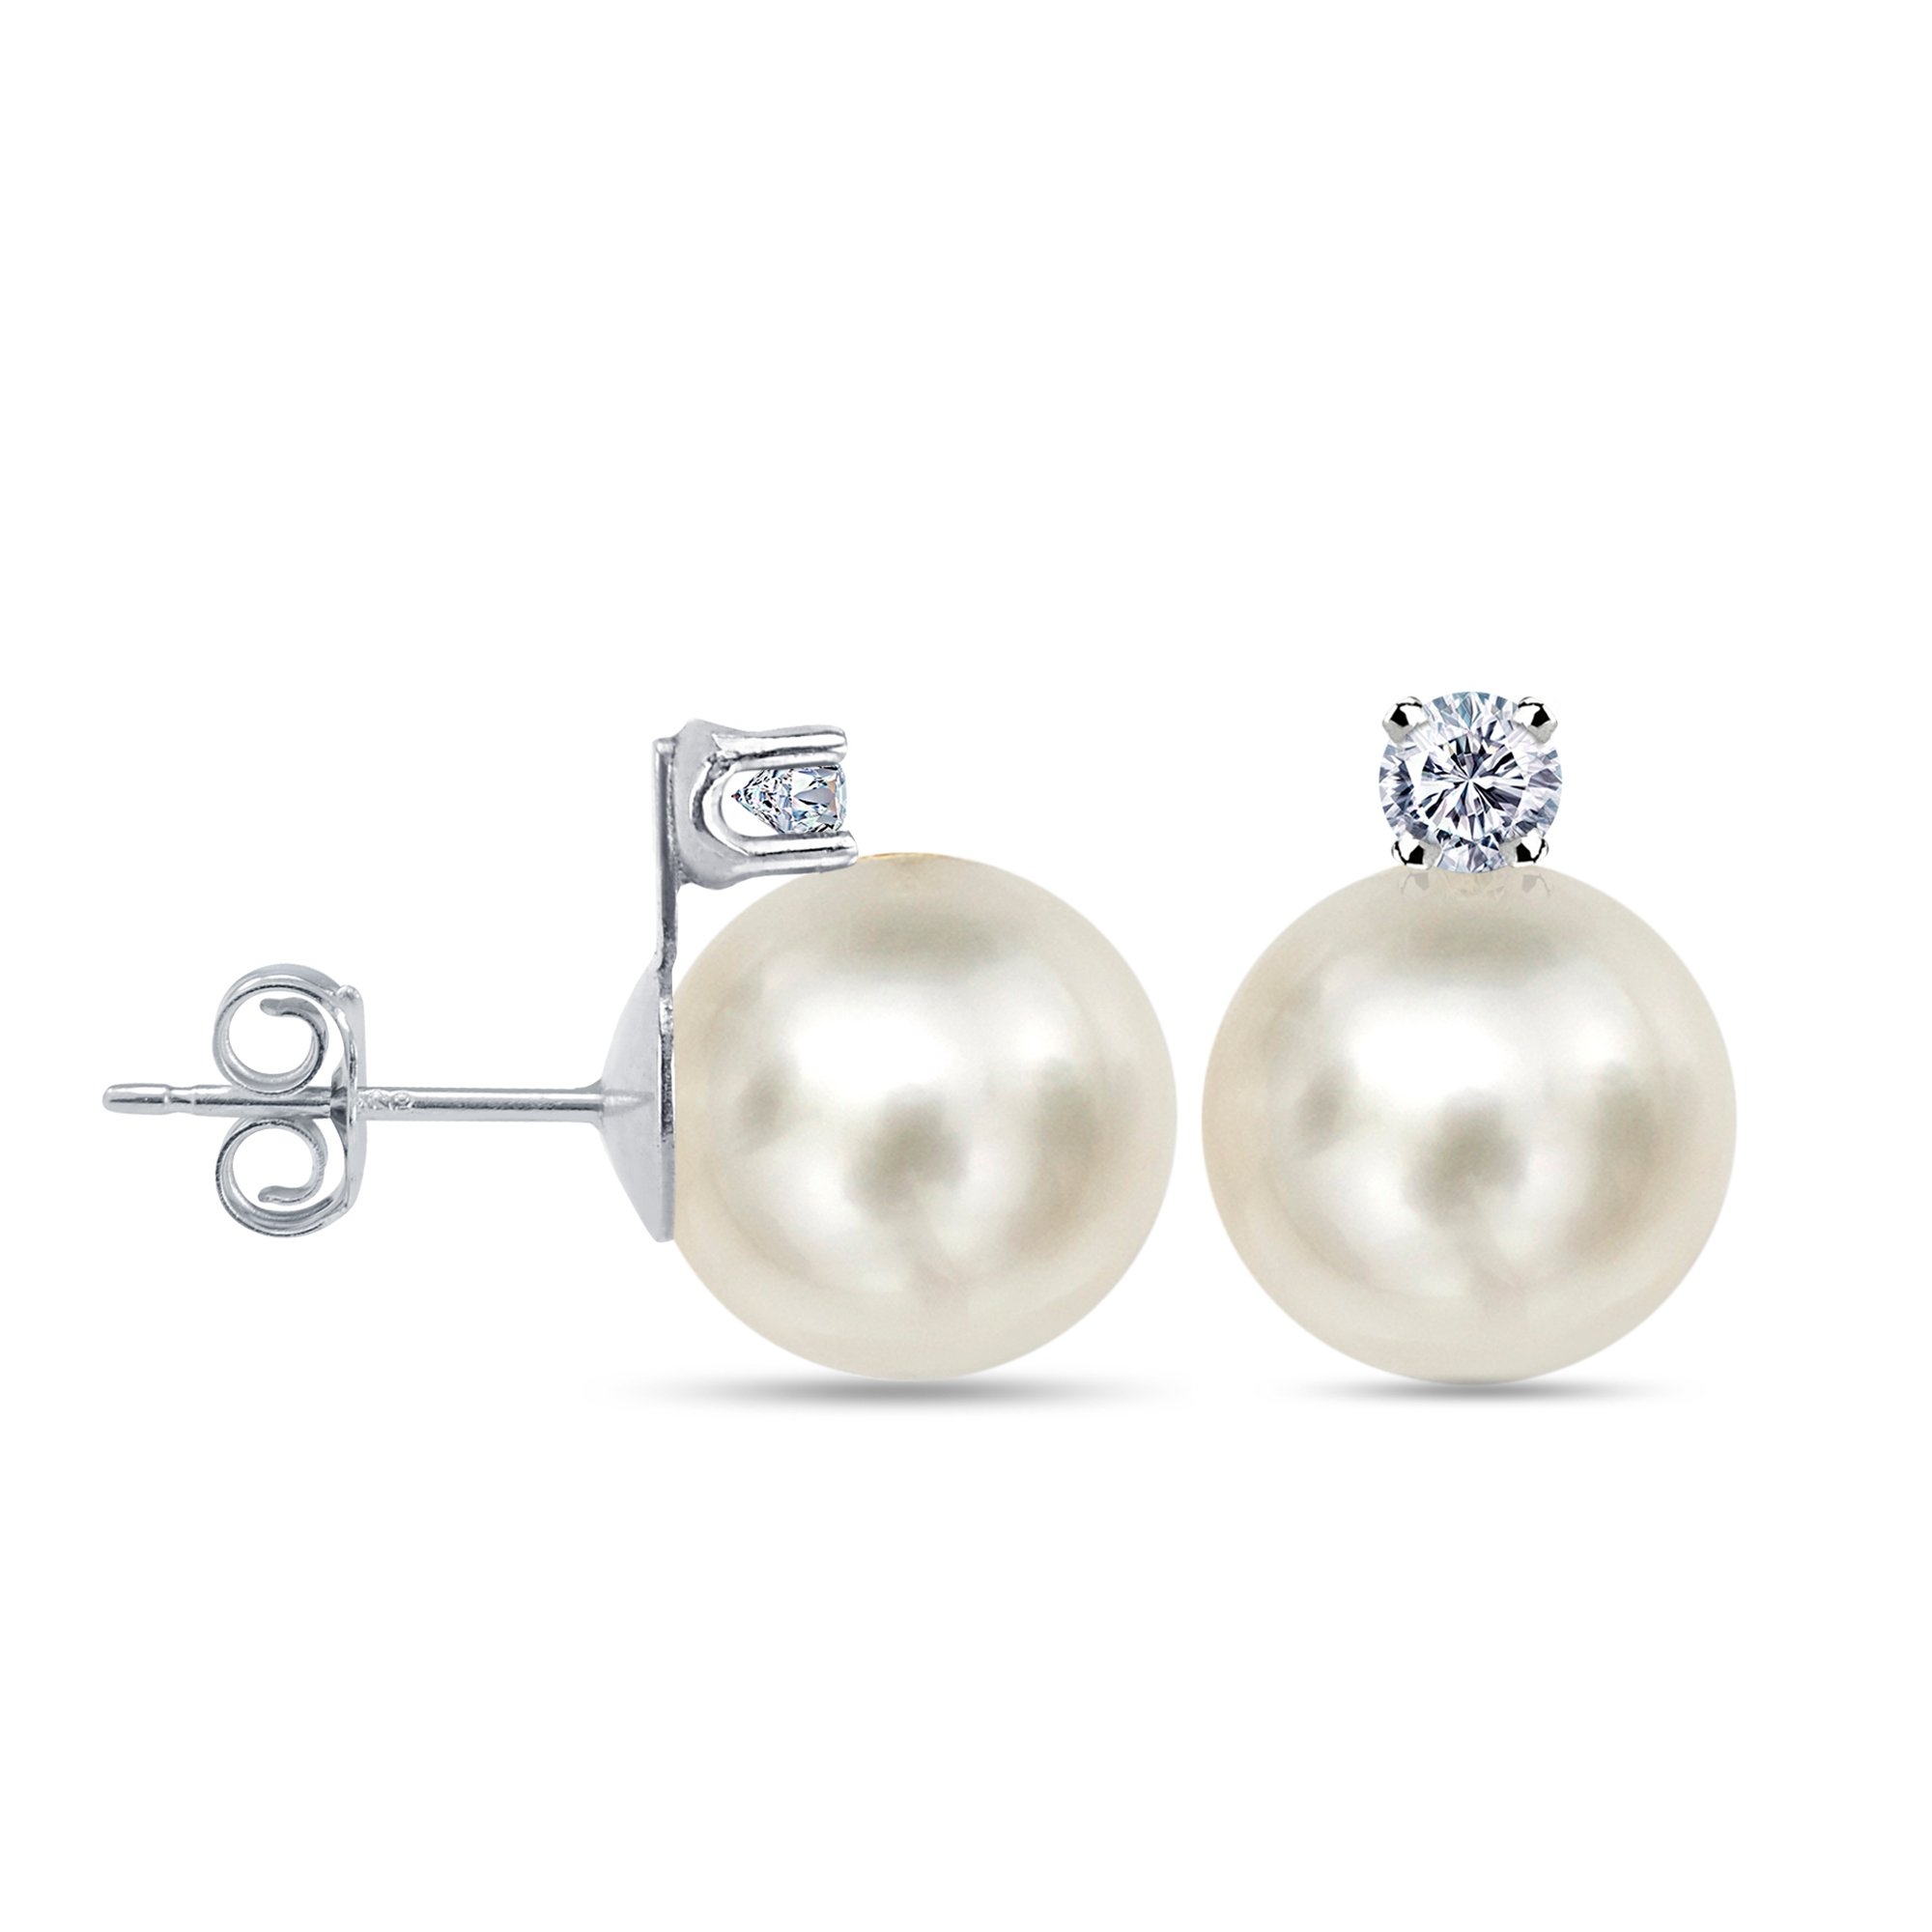 18k White Gold 1/5cttw Diamond with 8-8.5mm Round White Freshwater Cultured Pearl Stud Earrings